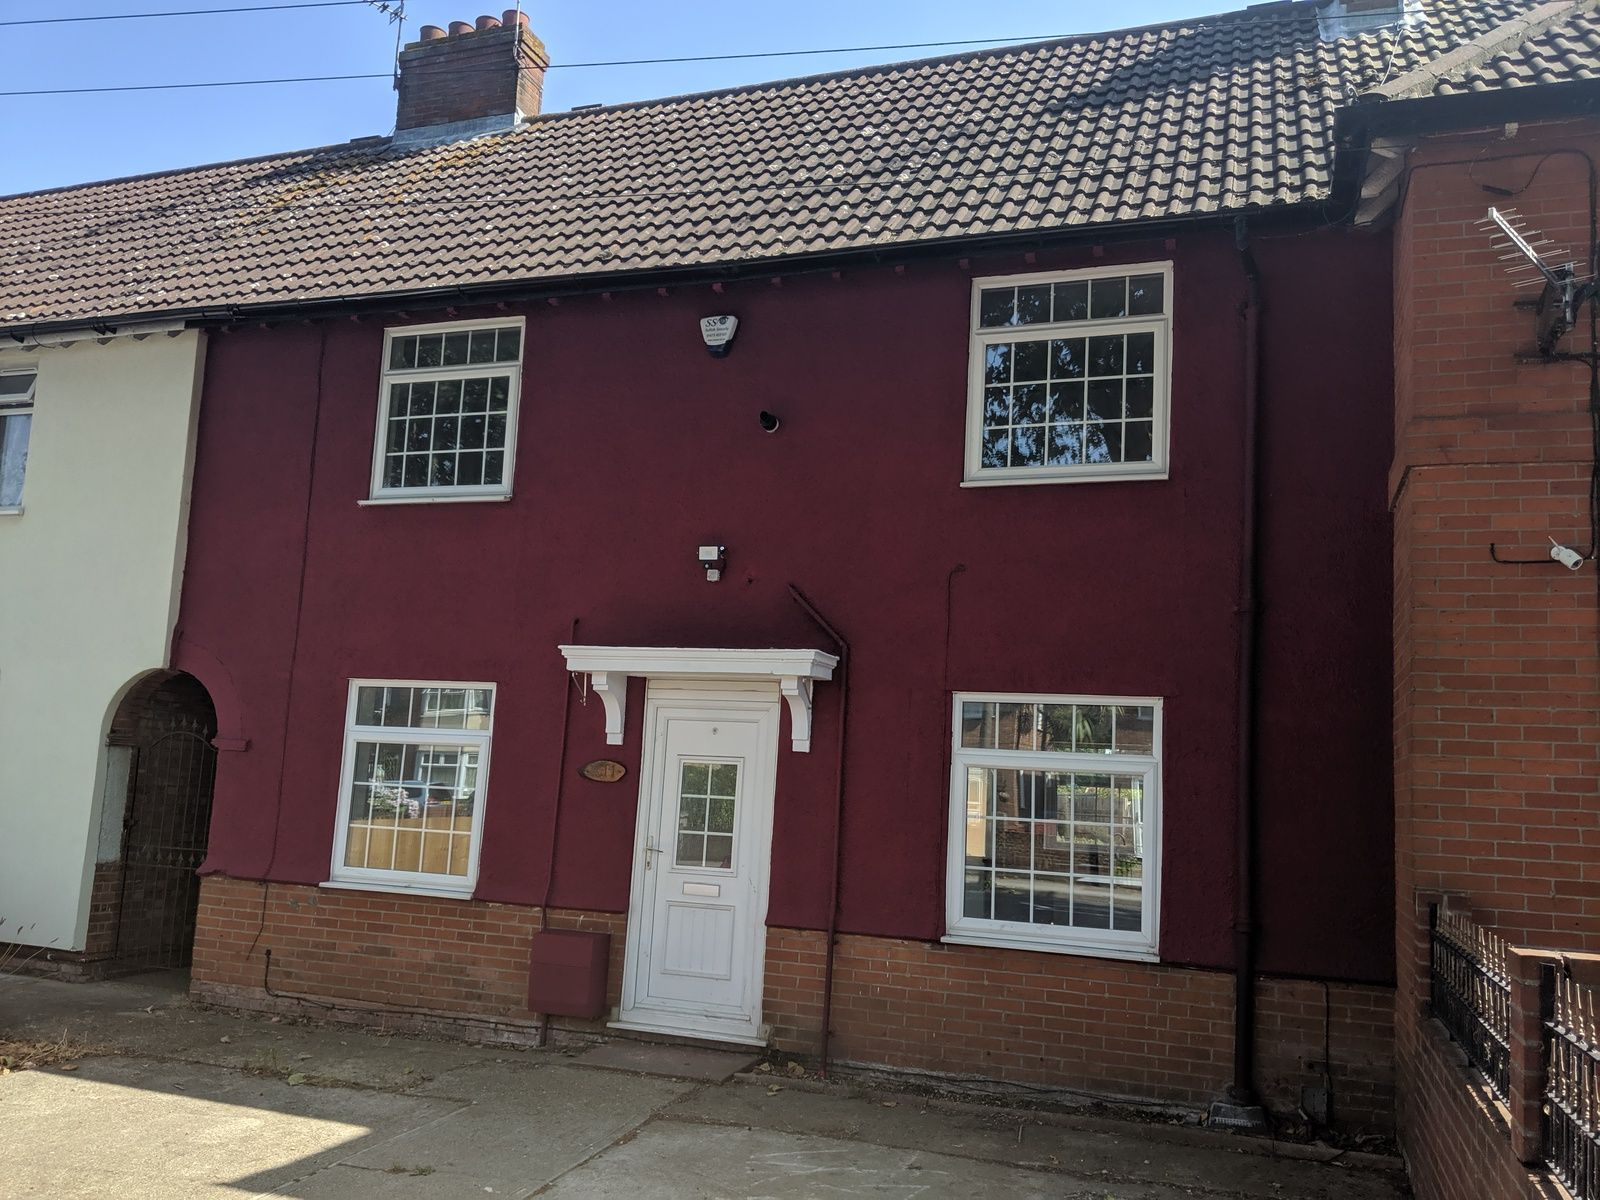 3 bedroom mid terraced house To Let in Ipswich - Front of House